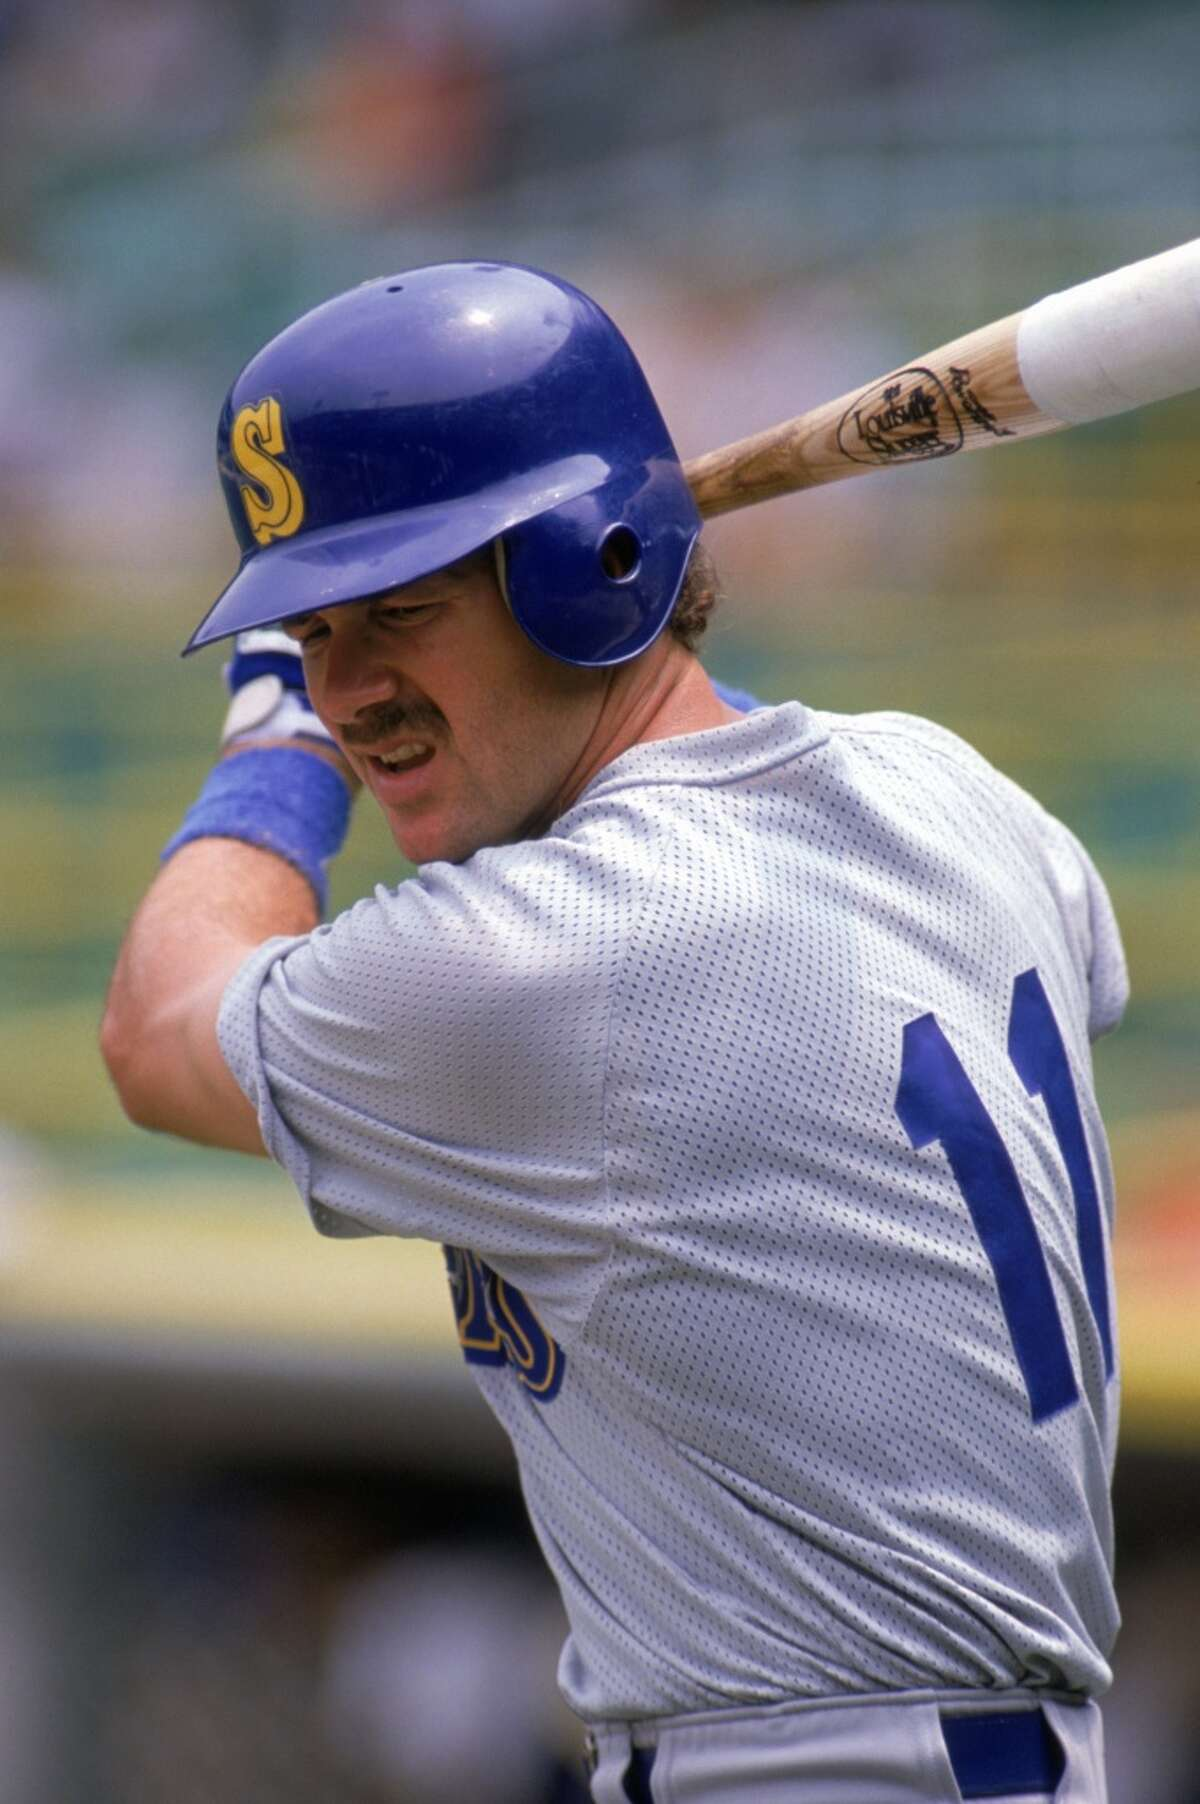 1989: Edgar Martinez of the Seattle Mariners practices his swing during a game against the Chicago White Sox at Comiskey Park in August 1989 in Chicago, Illinois.